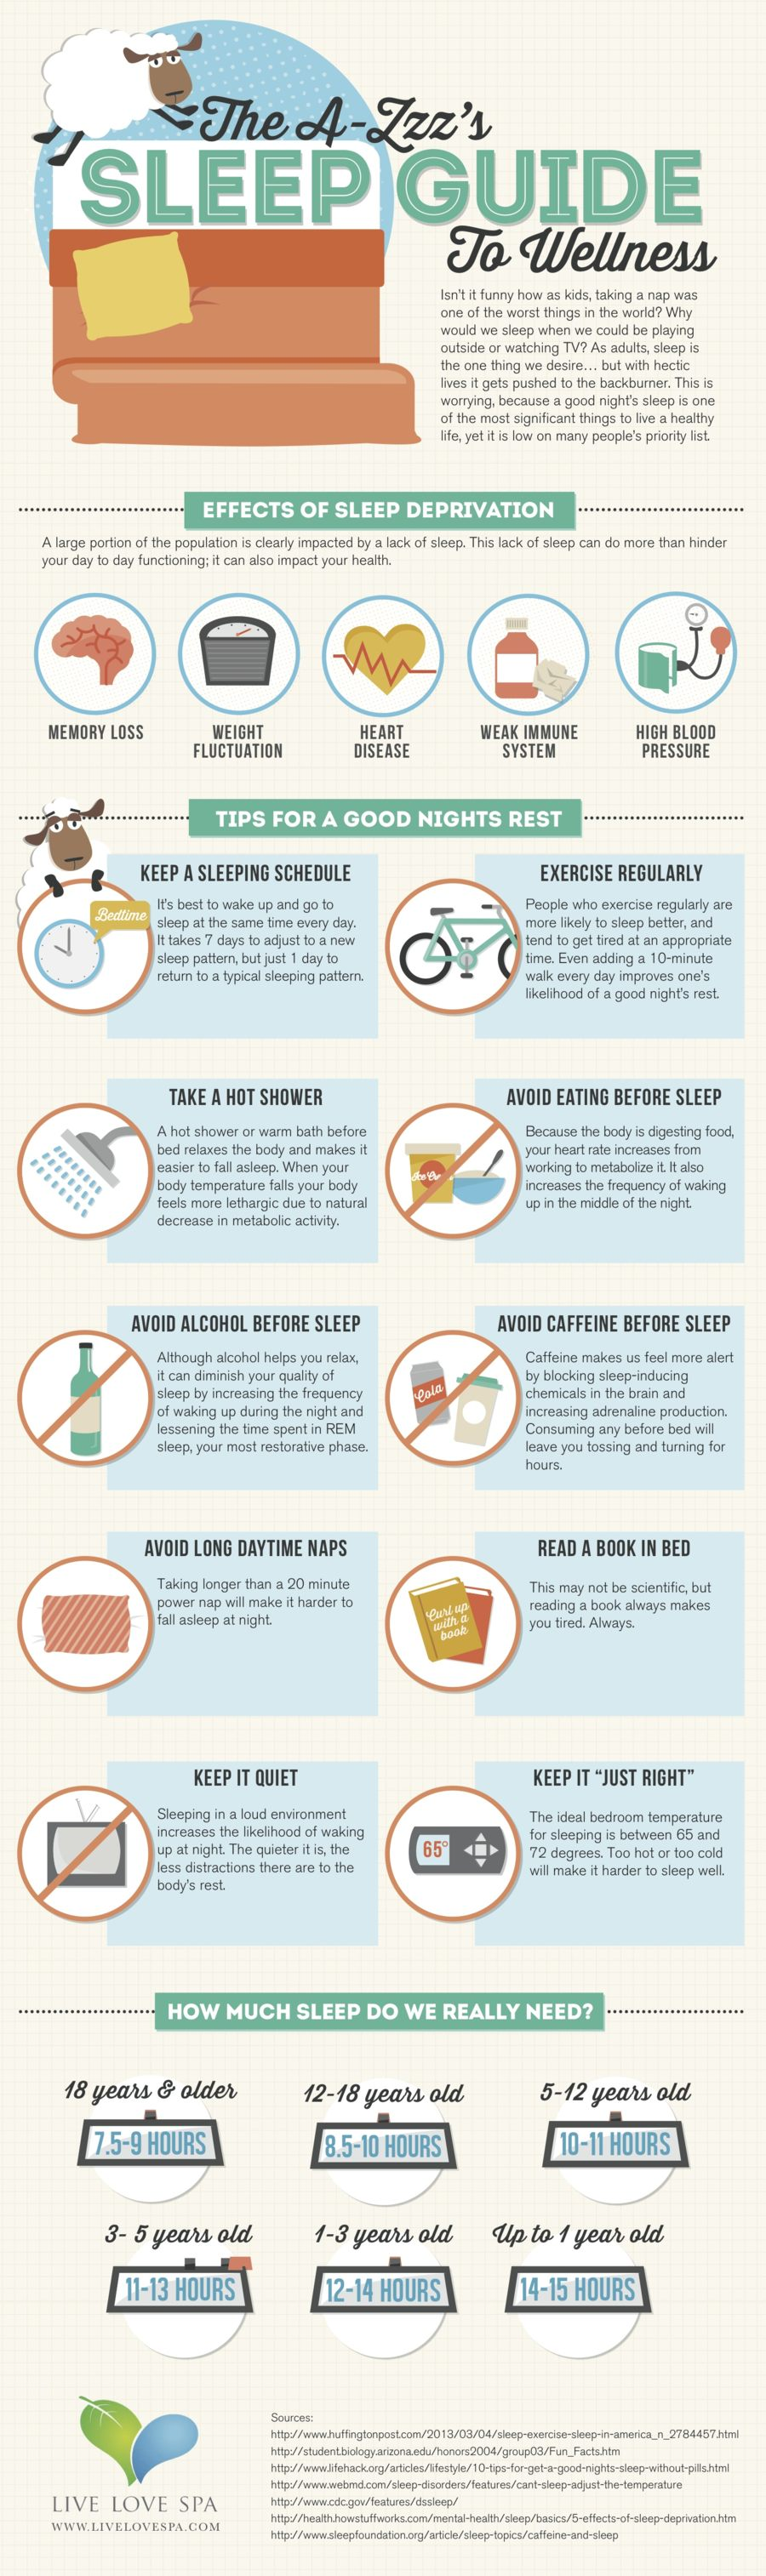 Sleep Guide Infographic